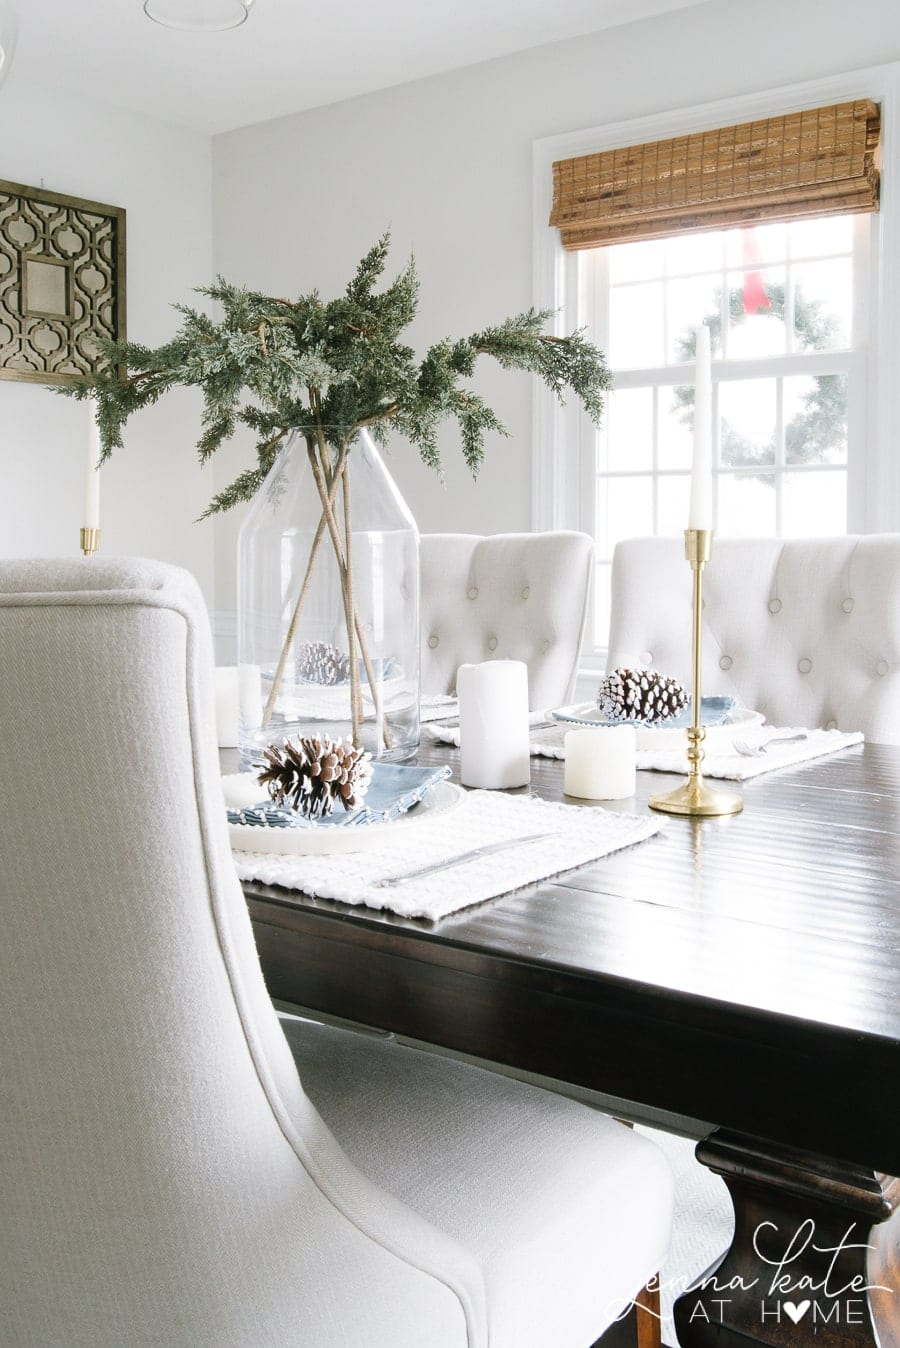 Non red Christmas items can be incorporated into winter table decor